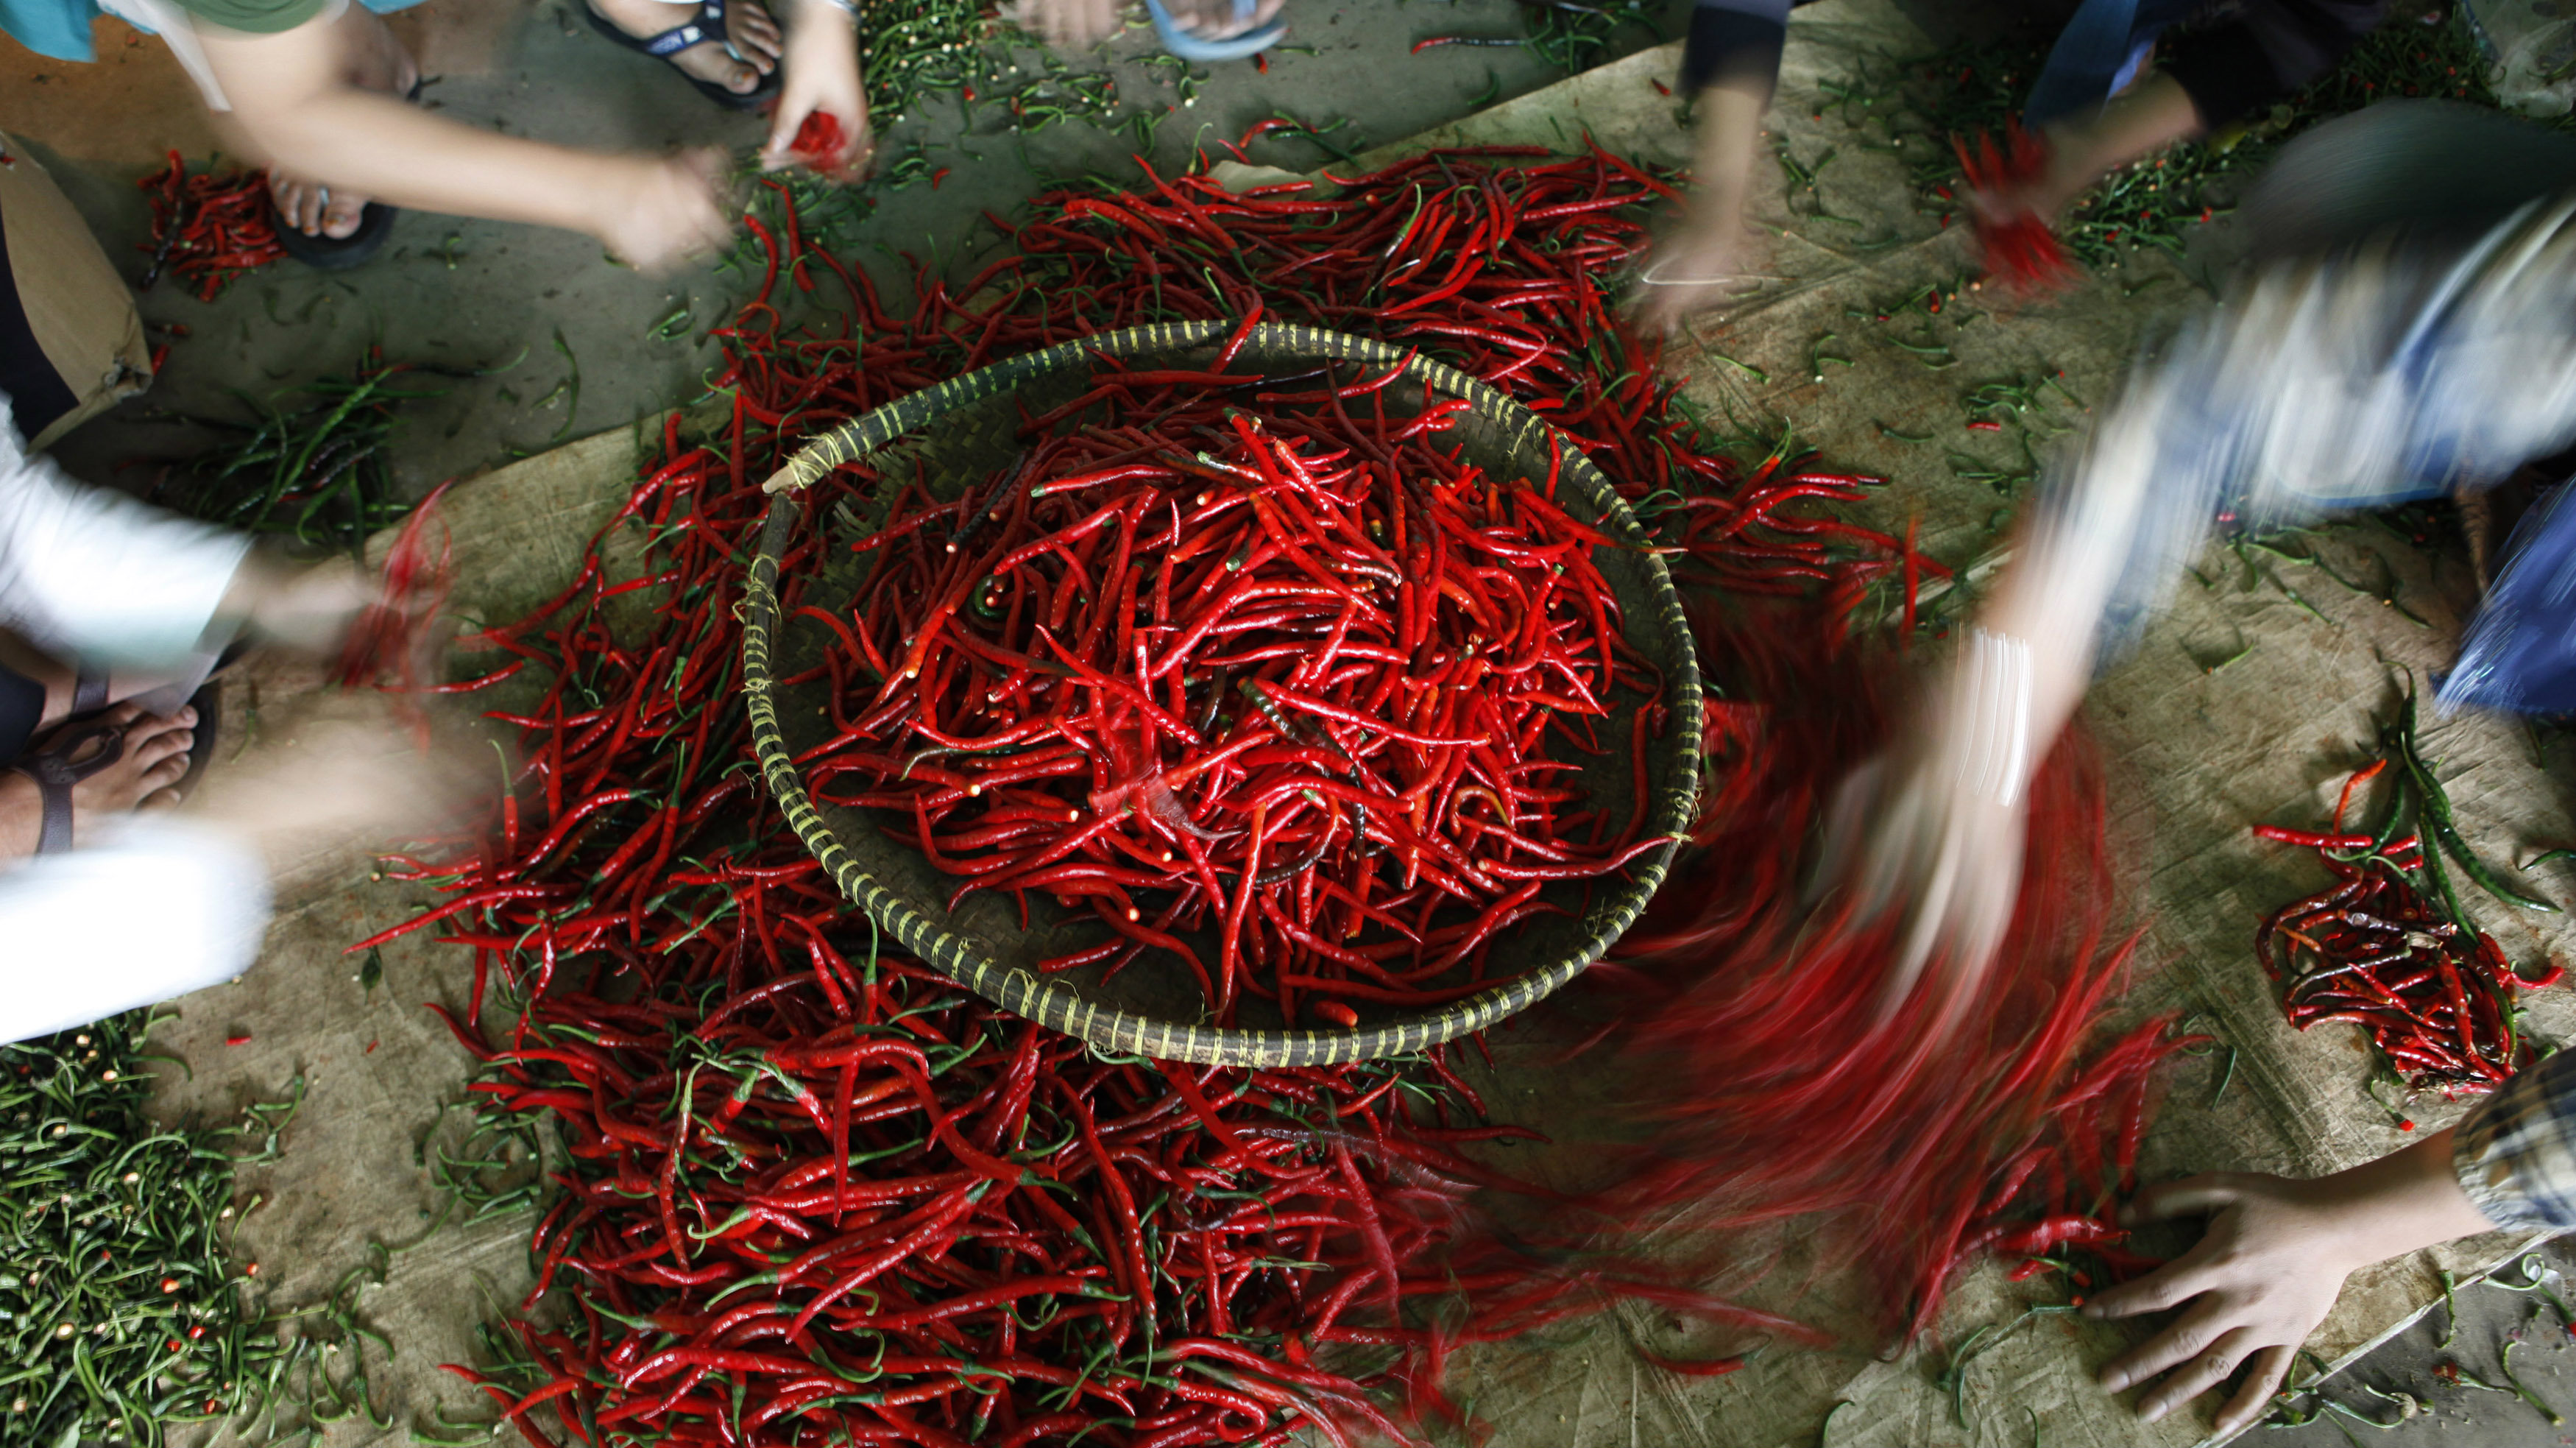 Workers select chillies in a stall at the Kramat Jati vegetable distributors centre in Jakarta January 11, 2011. Rising chilli and rice prices helped push up Indonesia's annual inflation to a 20-month high near 7 percent in December, and spurred the country's president and trade minister to urge households to plant food, such as chilli, at home. Global food prices hit a record last month, outstripping levels that prompted riots in 2008, and key grains could climb even further as weather patterns give cause for concern, the United Nations food agency said last Wednesday.